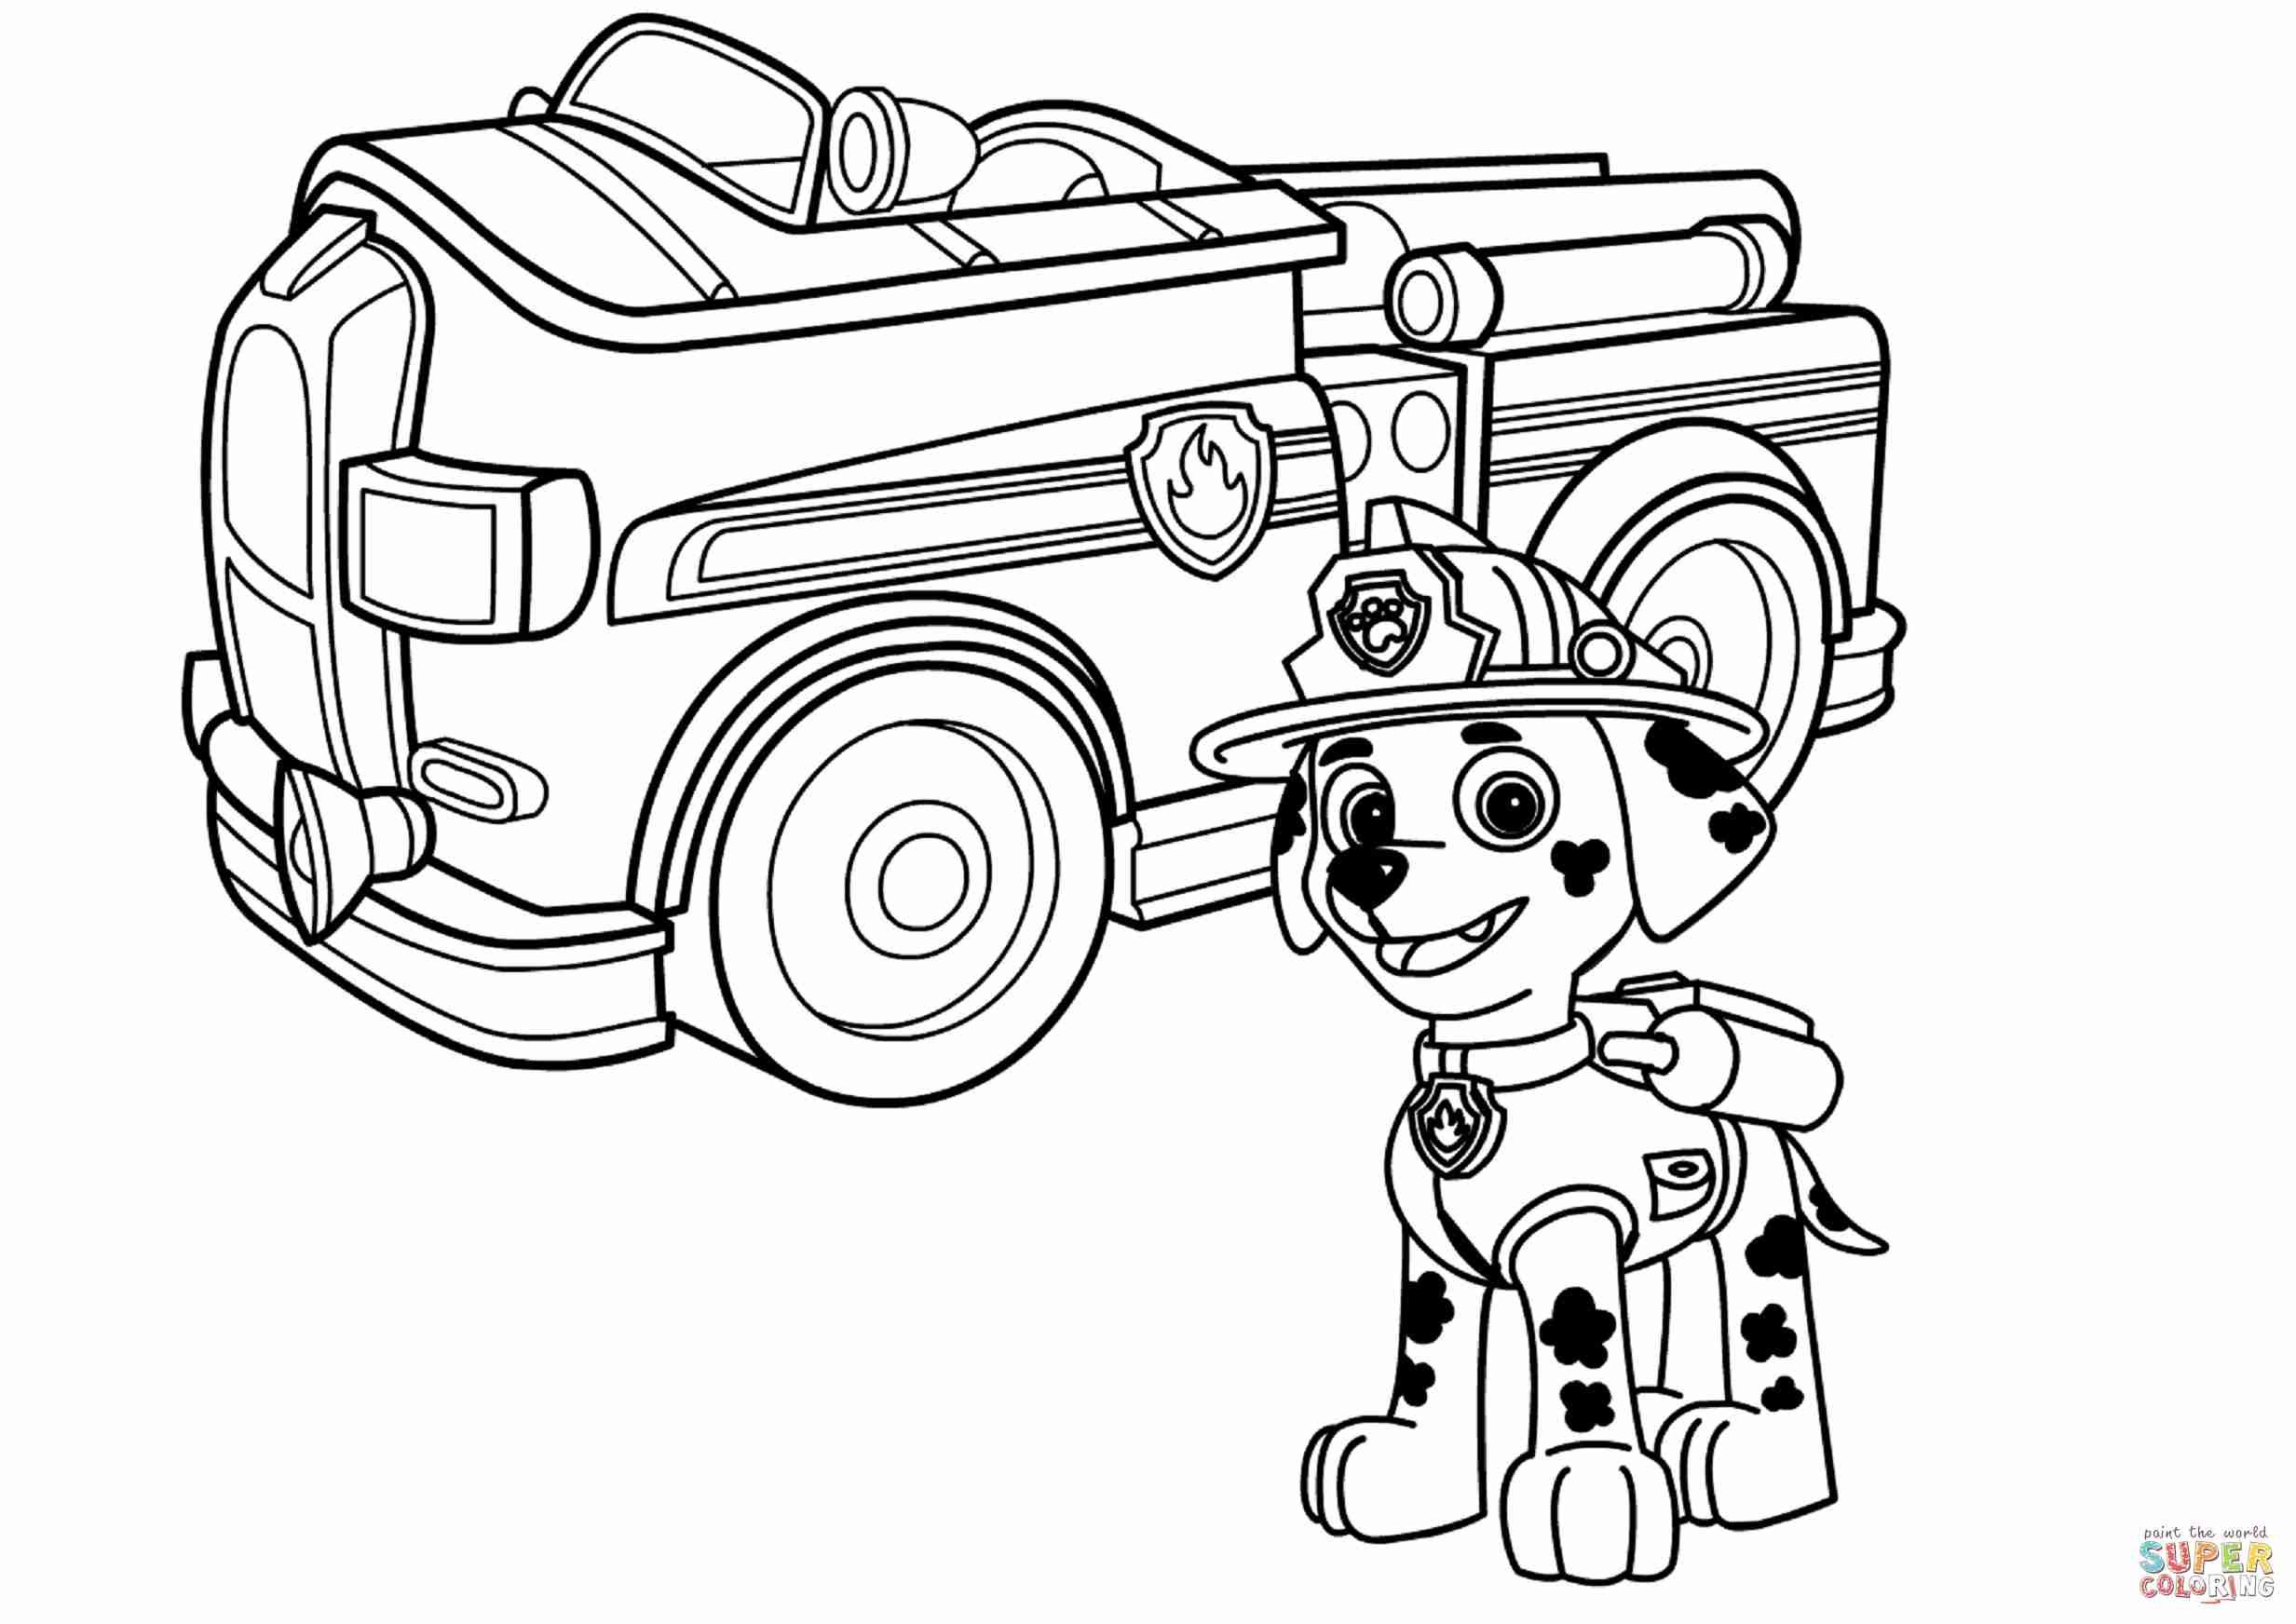 lego truck coloring pages lego system 6670 rescue truck and drive coloring page lego coloring truck pages